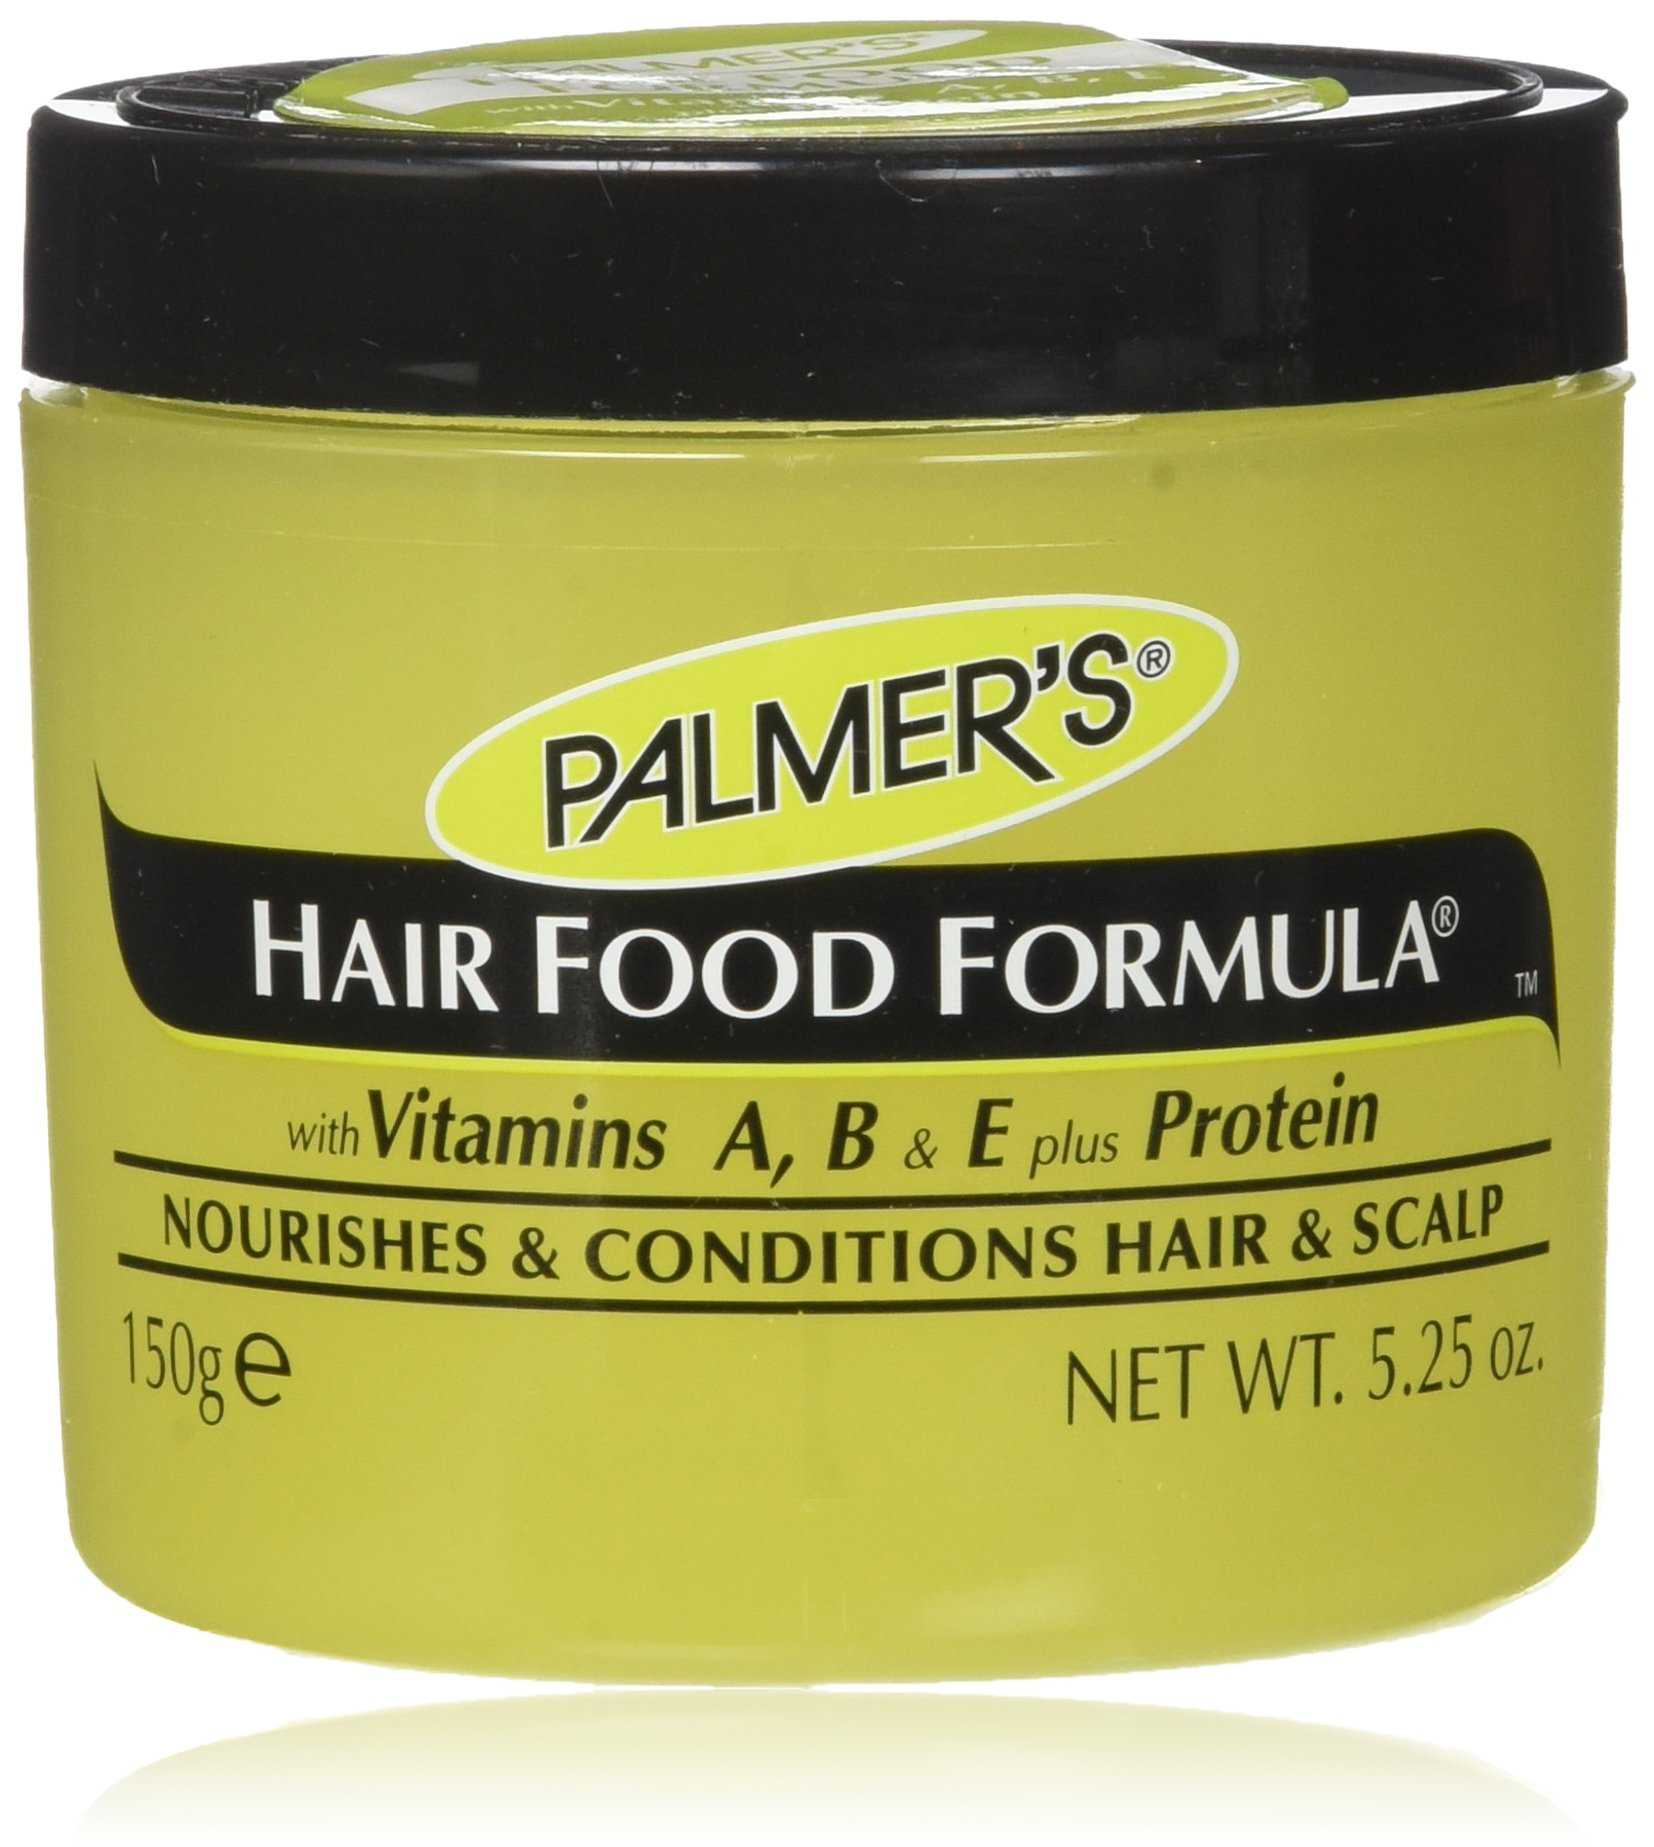 Palmers Hair Food Formula, 5.25 Ounce